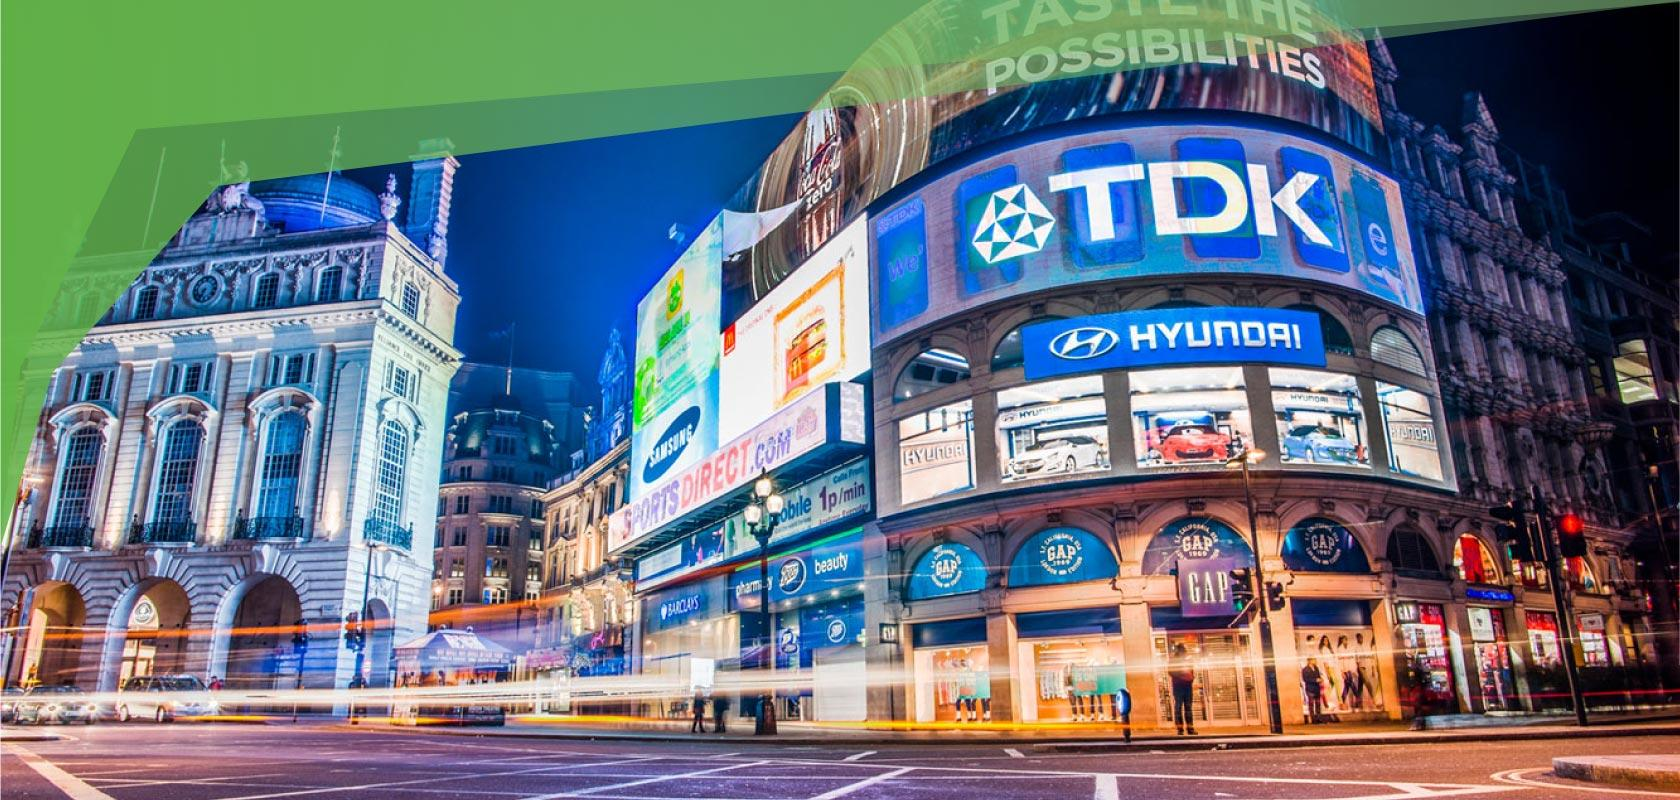 TDK LED DIGITAL Signage